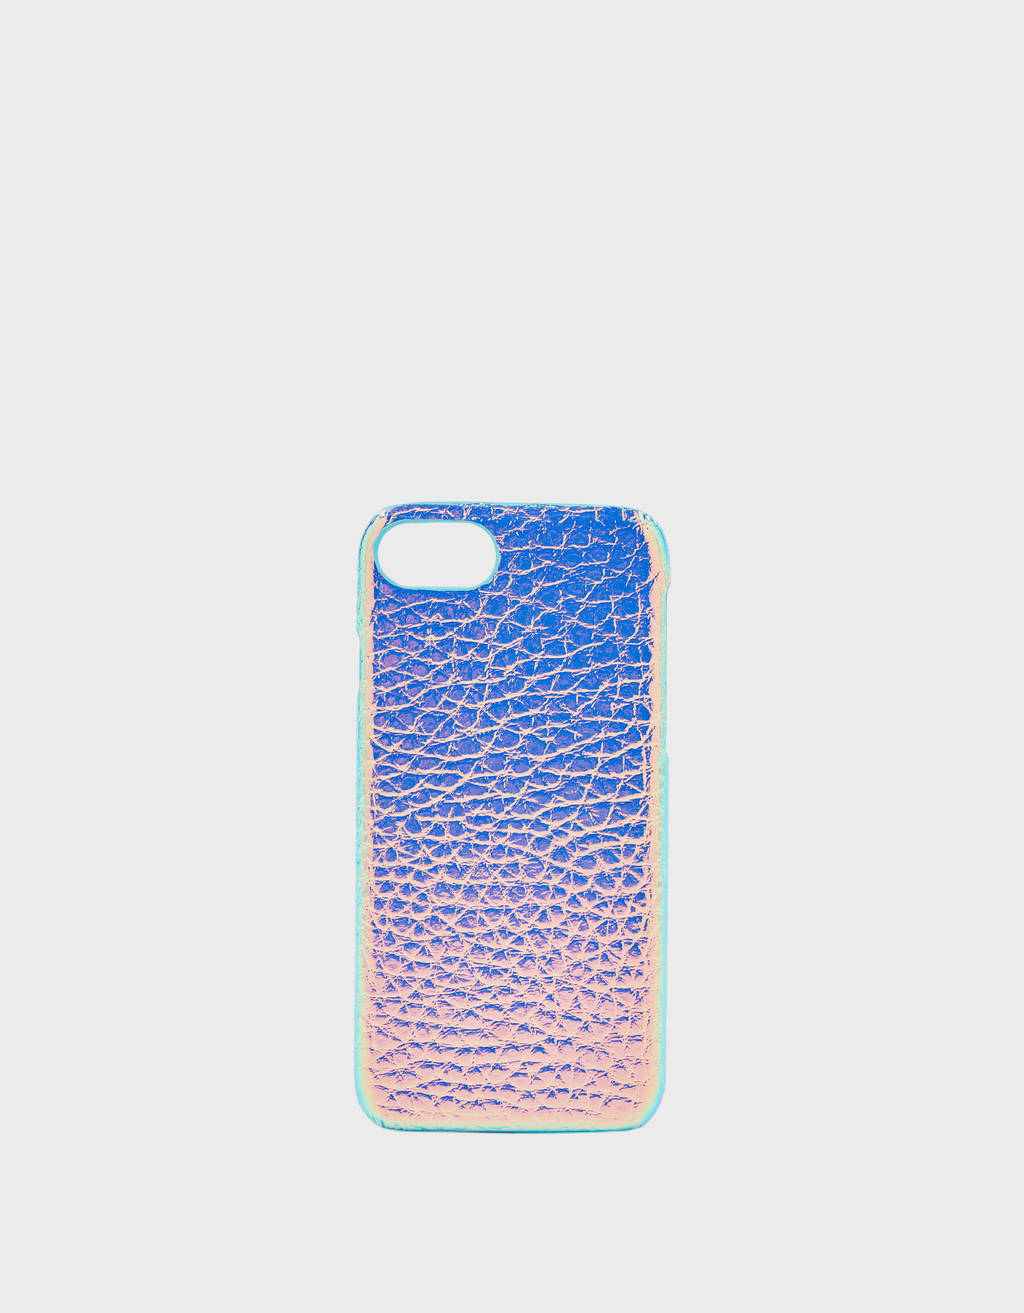 Iridescent iPhone 6 / 7 / 8 case